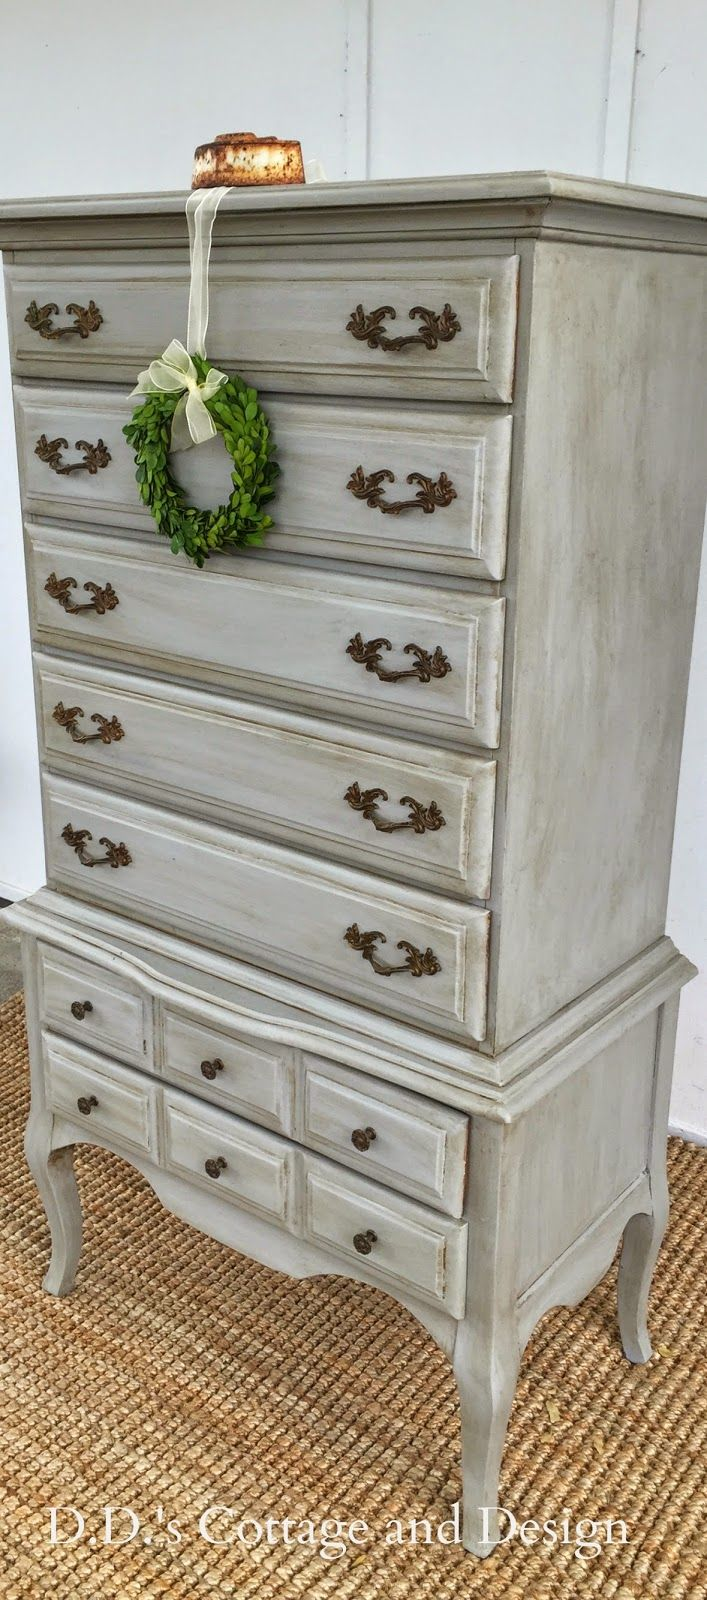 D d 39 s cottage and design grey french provincial chest on - Painted french provincial bedroom furniture ...